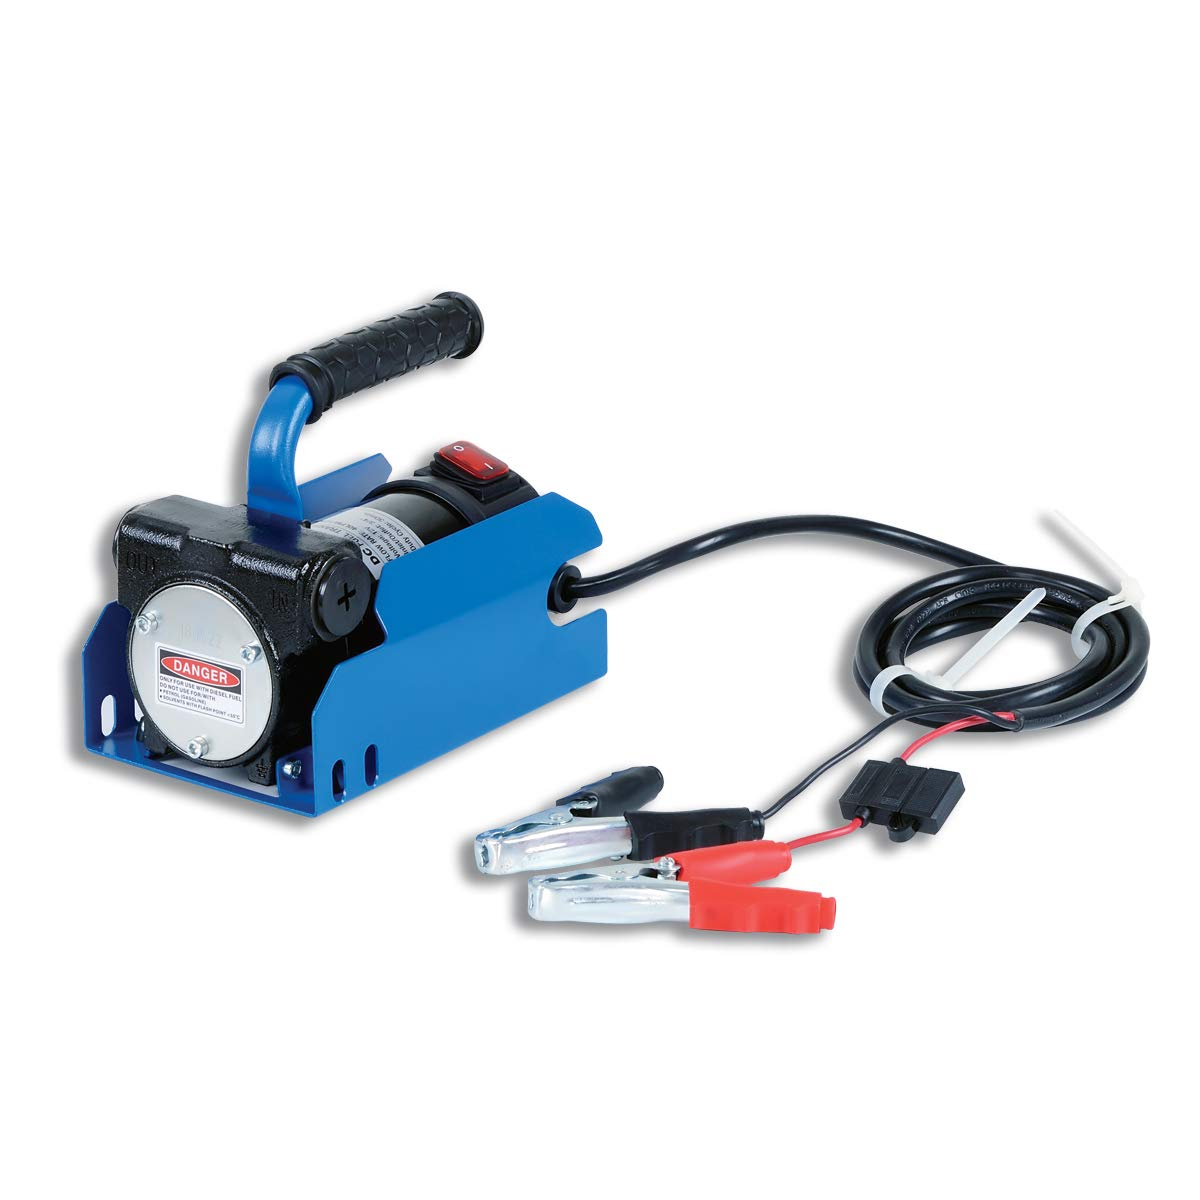 Fuelworks 20GPM Fuel Transfer Pump Kit 14' Hose, Extensible Suction Tube and Manual Nozzle, 12V 10GPM (Diesel Pump Only)